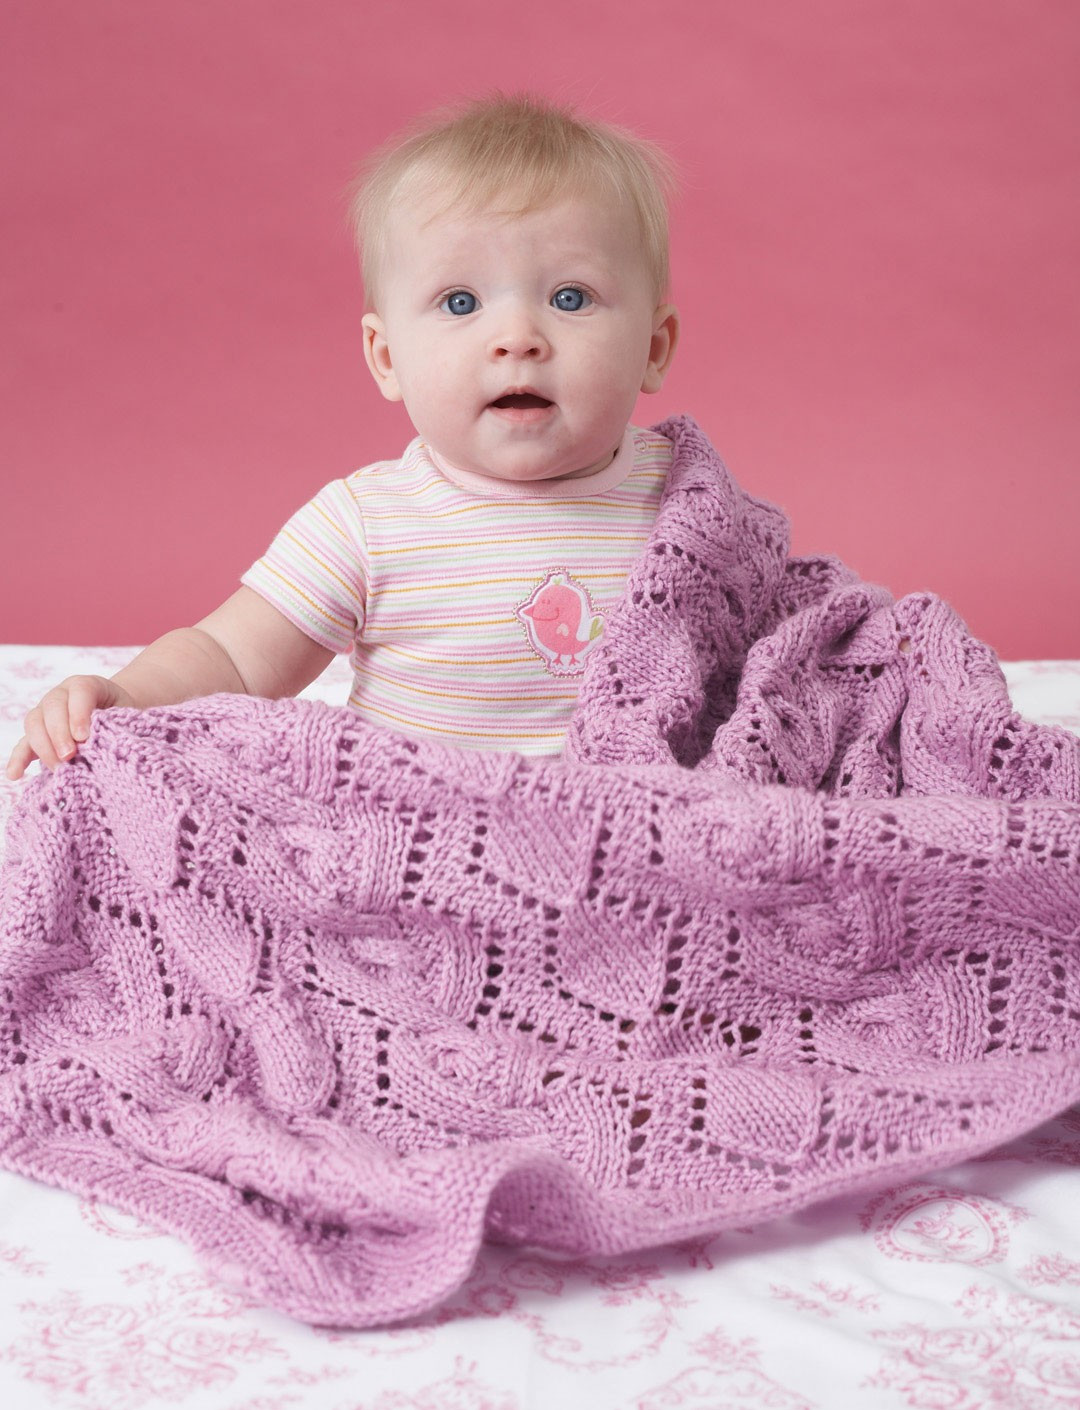 Awesome Bernat Cable and Lace Blanket Knit Pattern Lace Blanket Of Great 41 Ideas Lace Blanket